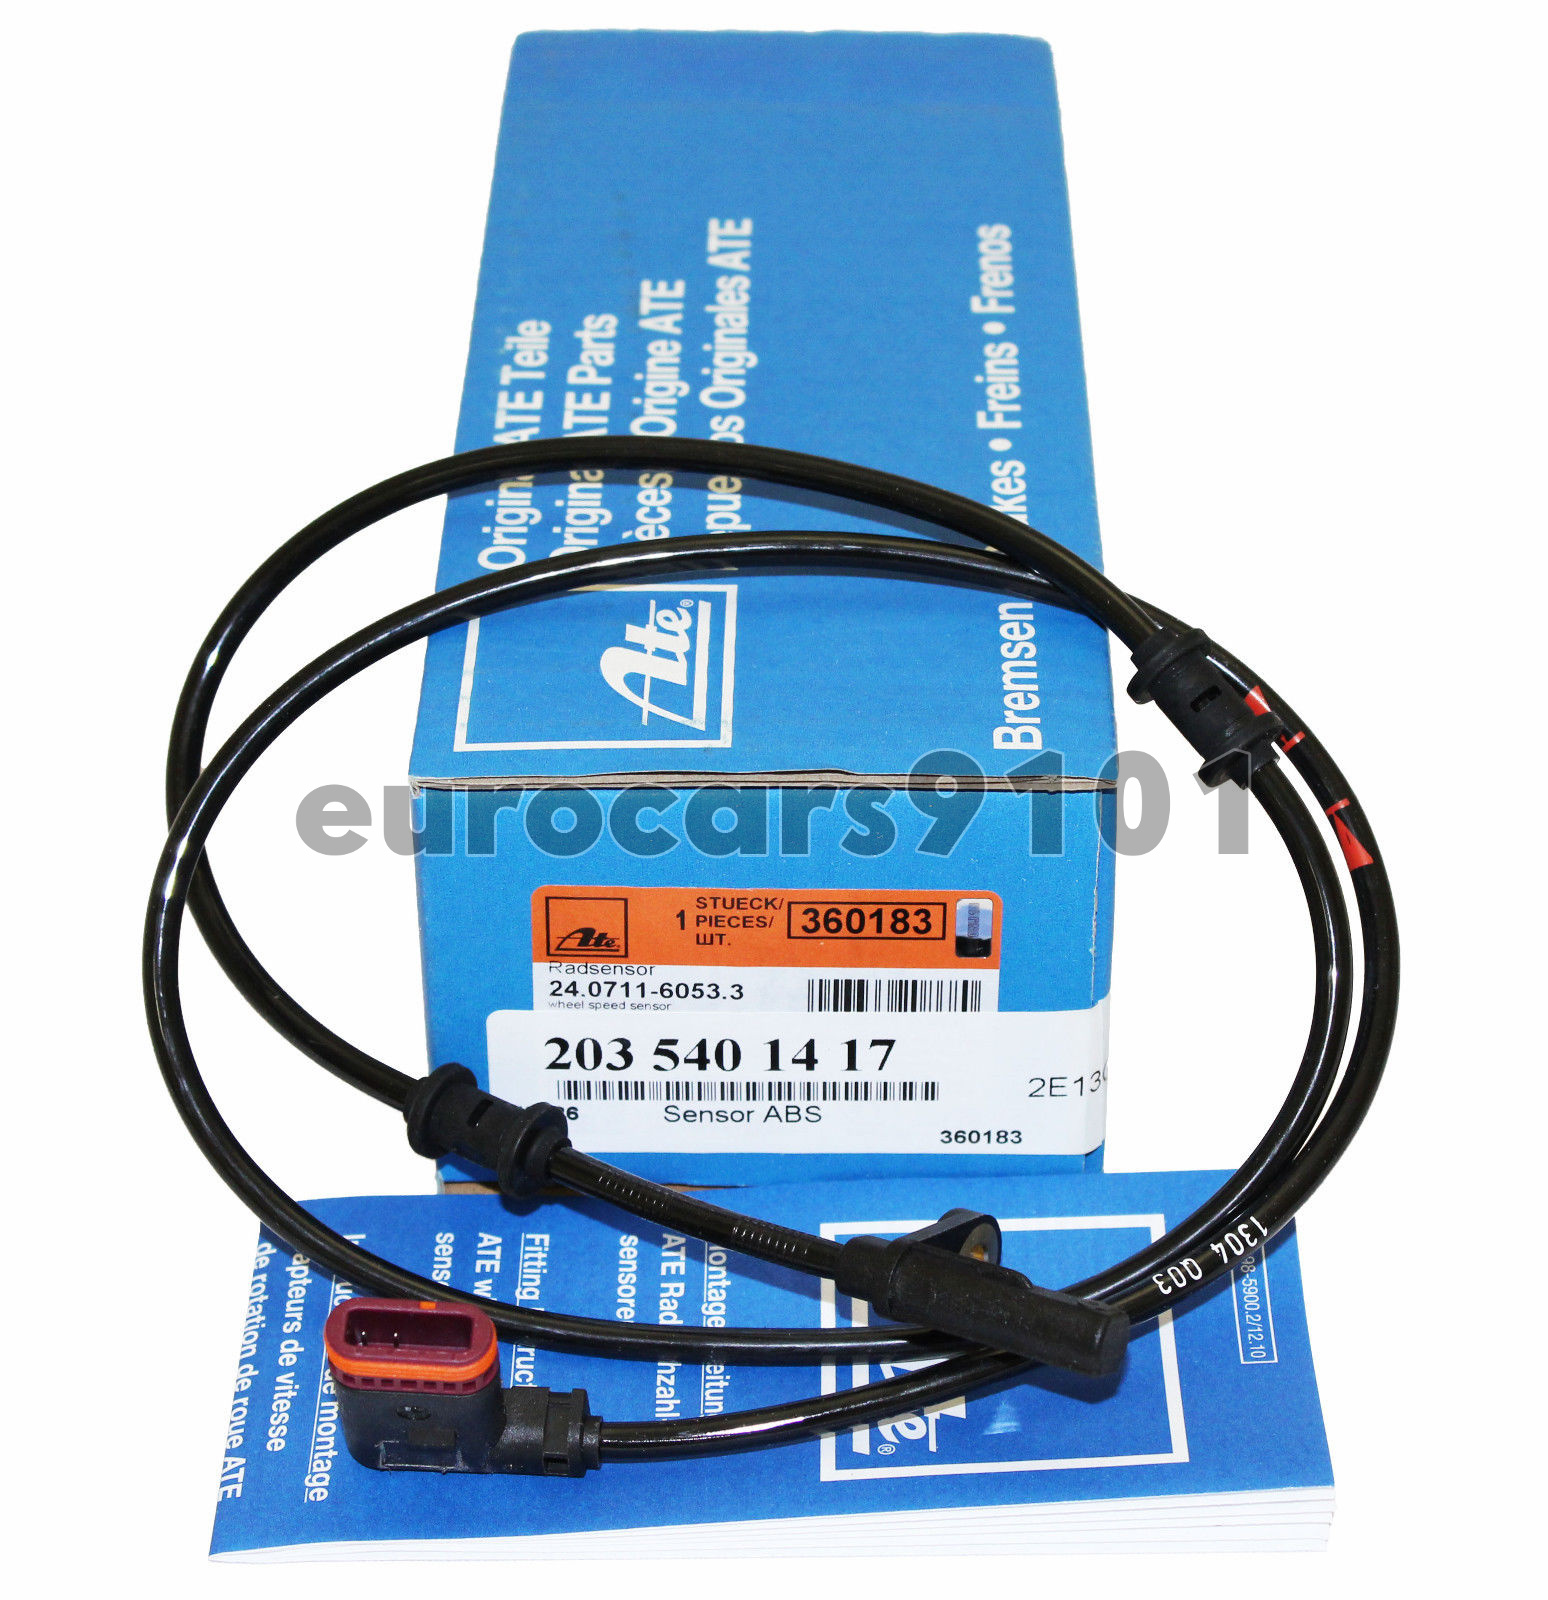 New ABS Wheel Speed Sensor Rear Right 2001-08 for Mercedes-Benz 2035401417